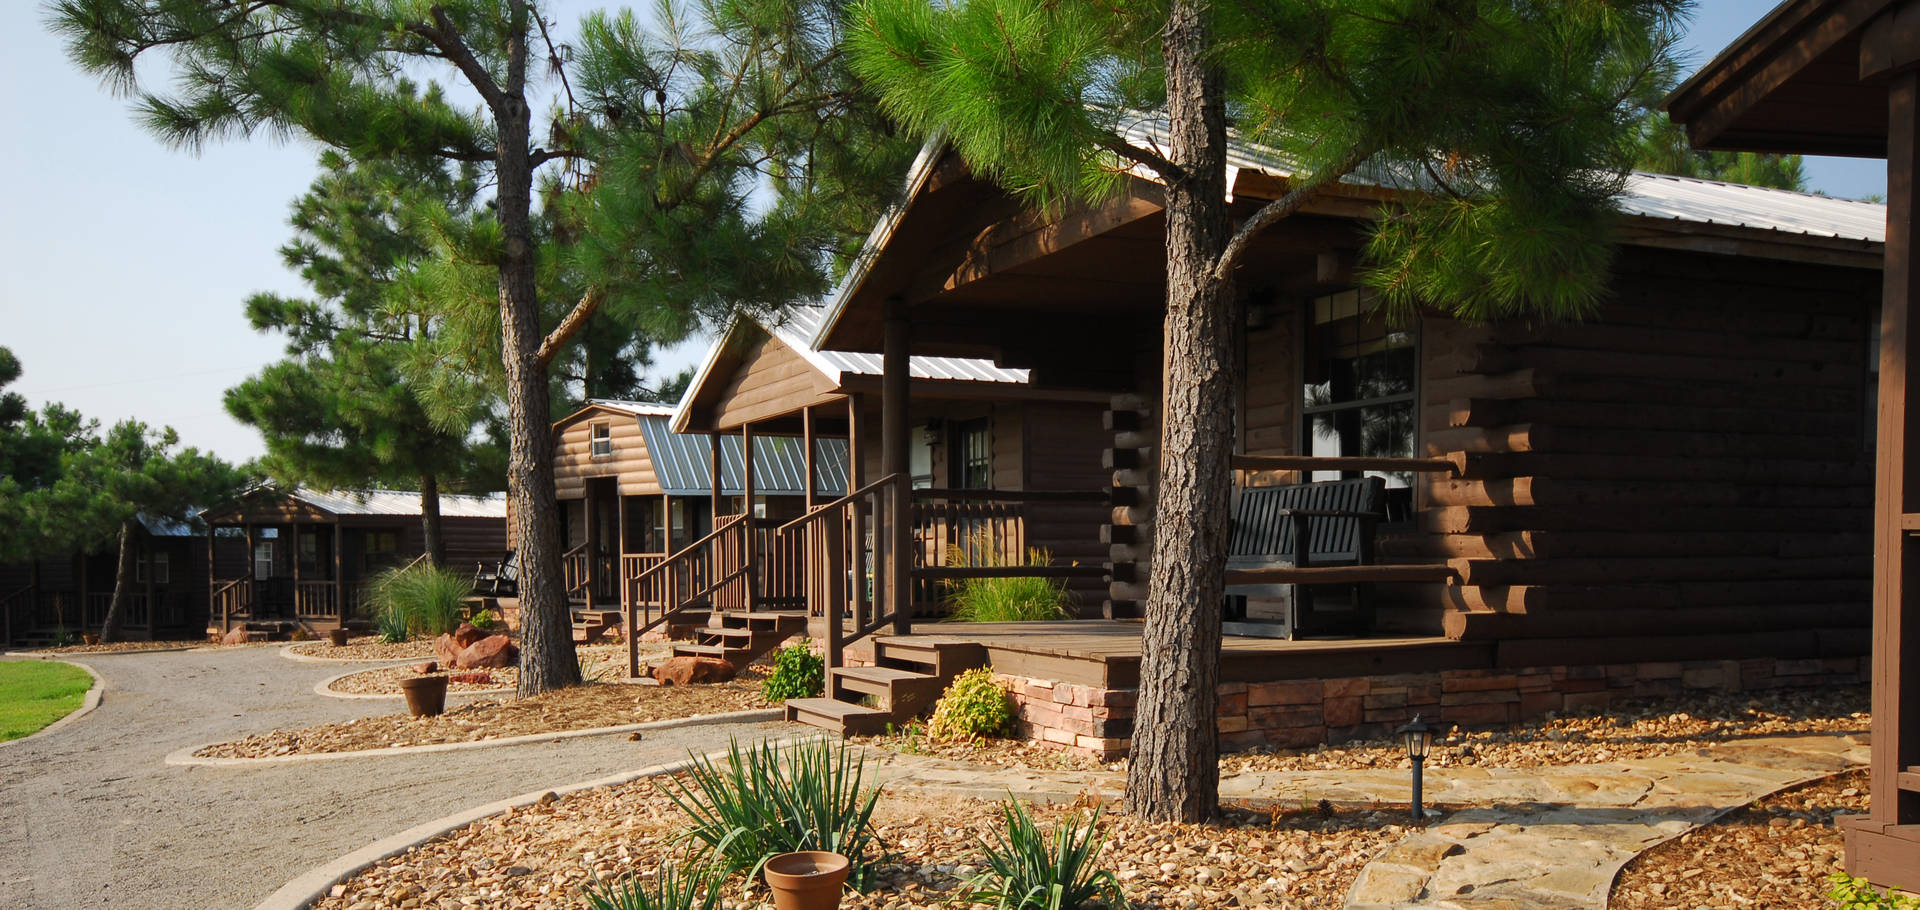 rentals cabin broken dogwdout bend lake in beavers creek cabins at near cedar dogwood oklahoma bow for rent